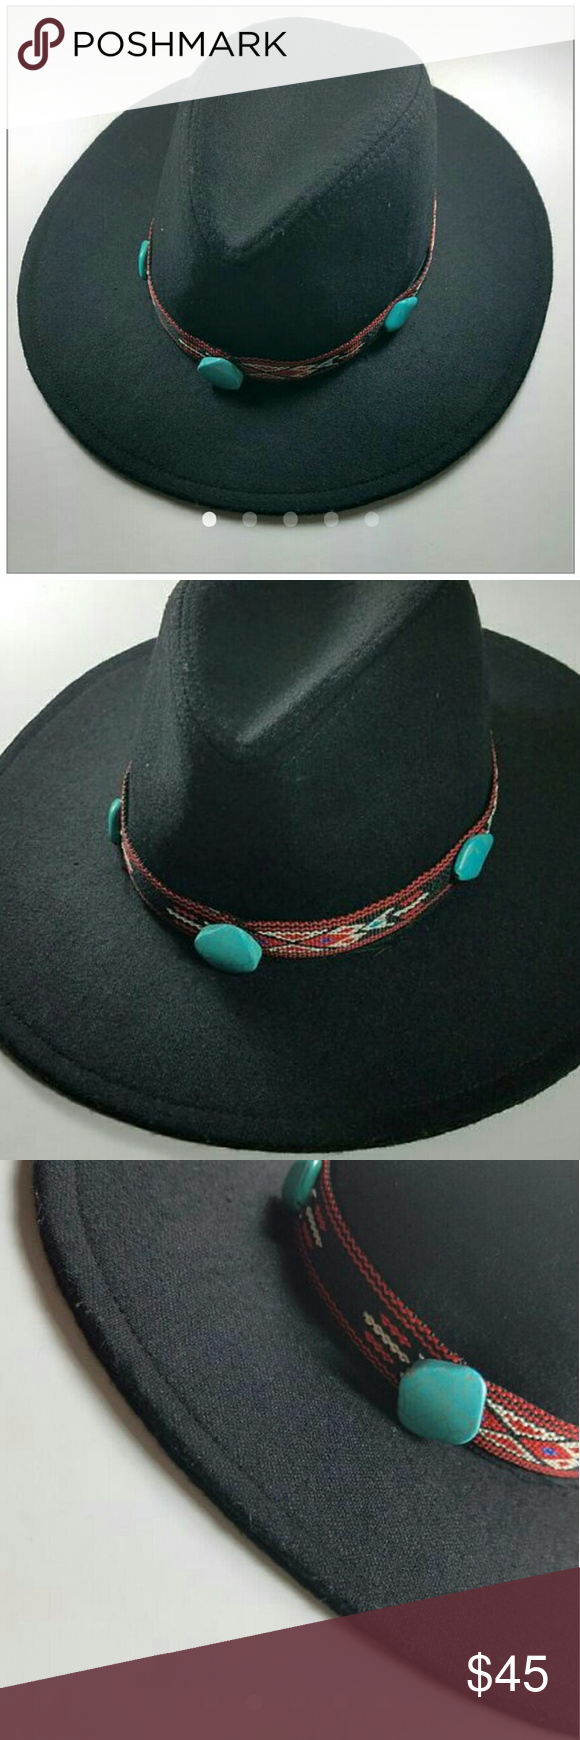 New Southwestern Boho Hat Band If You Are Like Me And Enjoy Changing Up Your Hats By Switching The Hat Band Then This Hand Boho Hat Southwestern Boho Hat Band